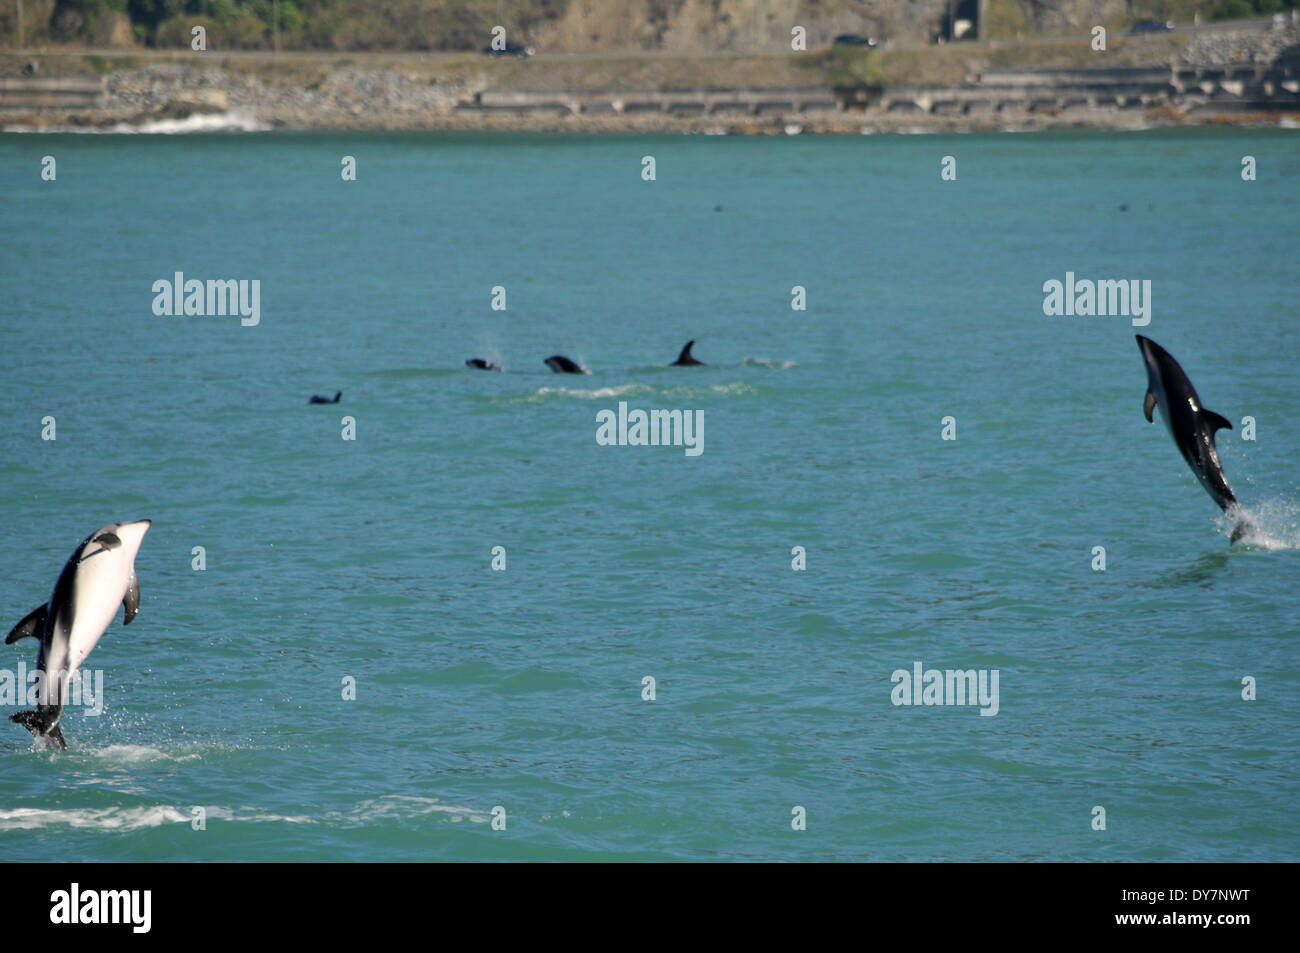 Dusky dolphins, Lagenorhynchus obscurus, jumping, Kaikoura, South Island, New Zealand - Stock Image